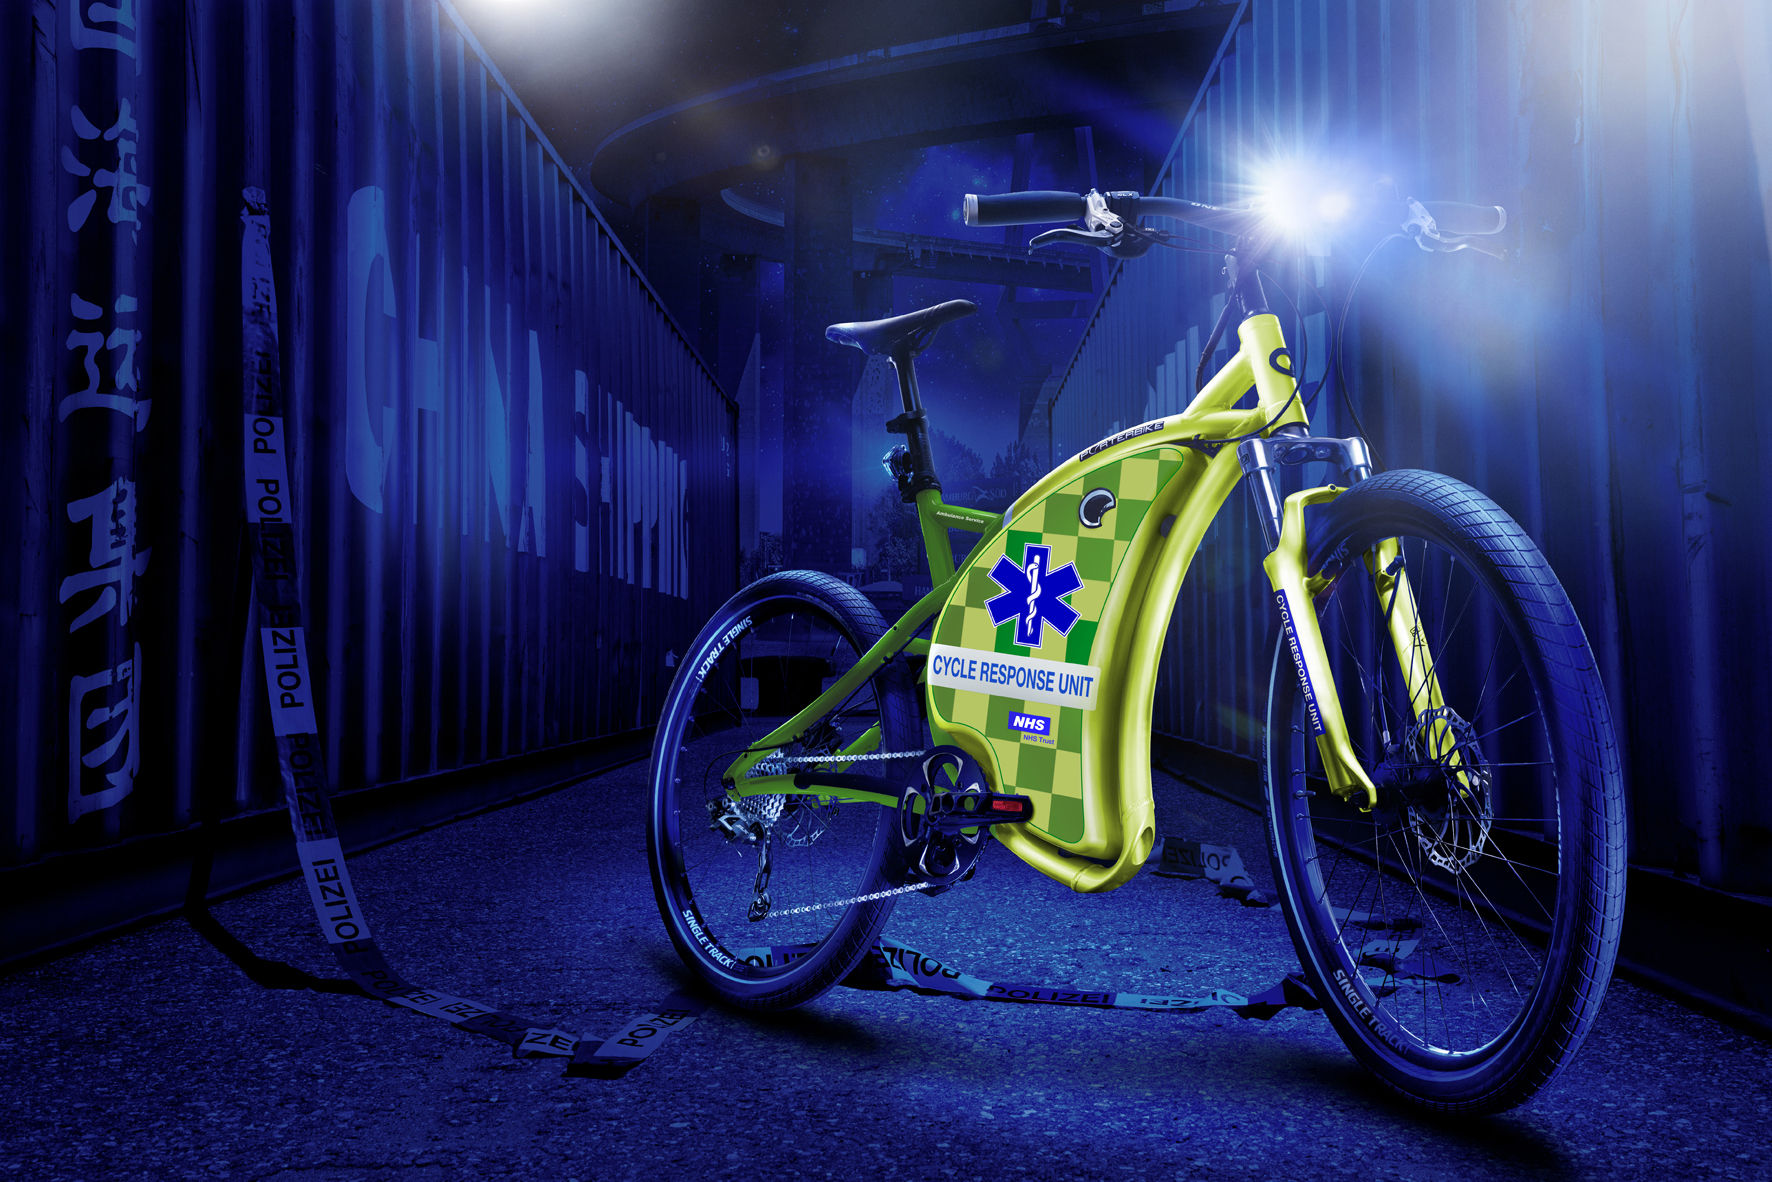 Emergency Medical Service - EMS bike design.